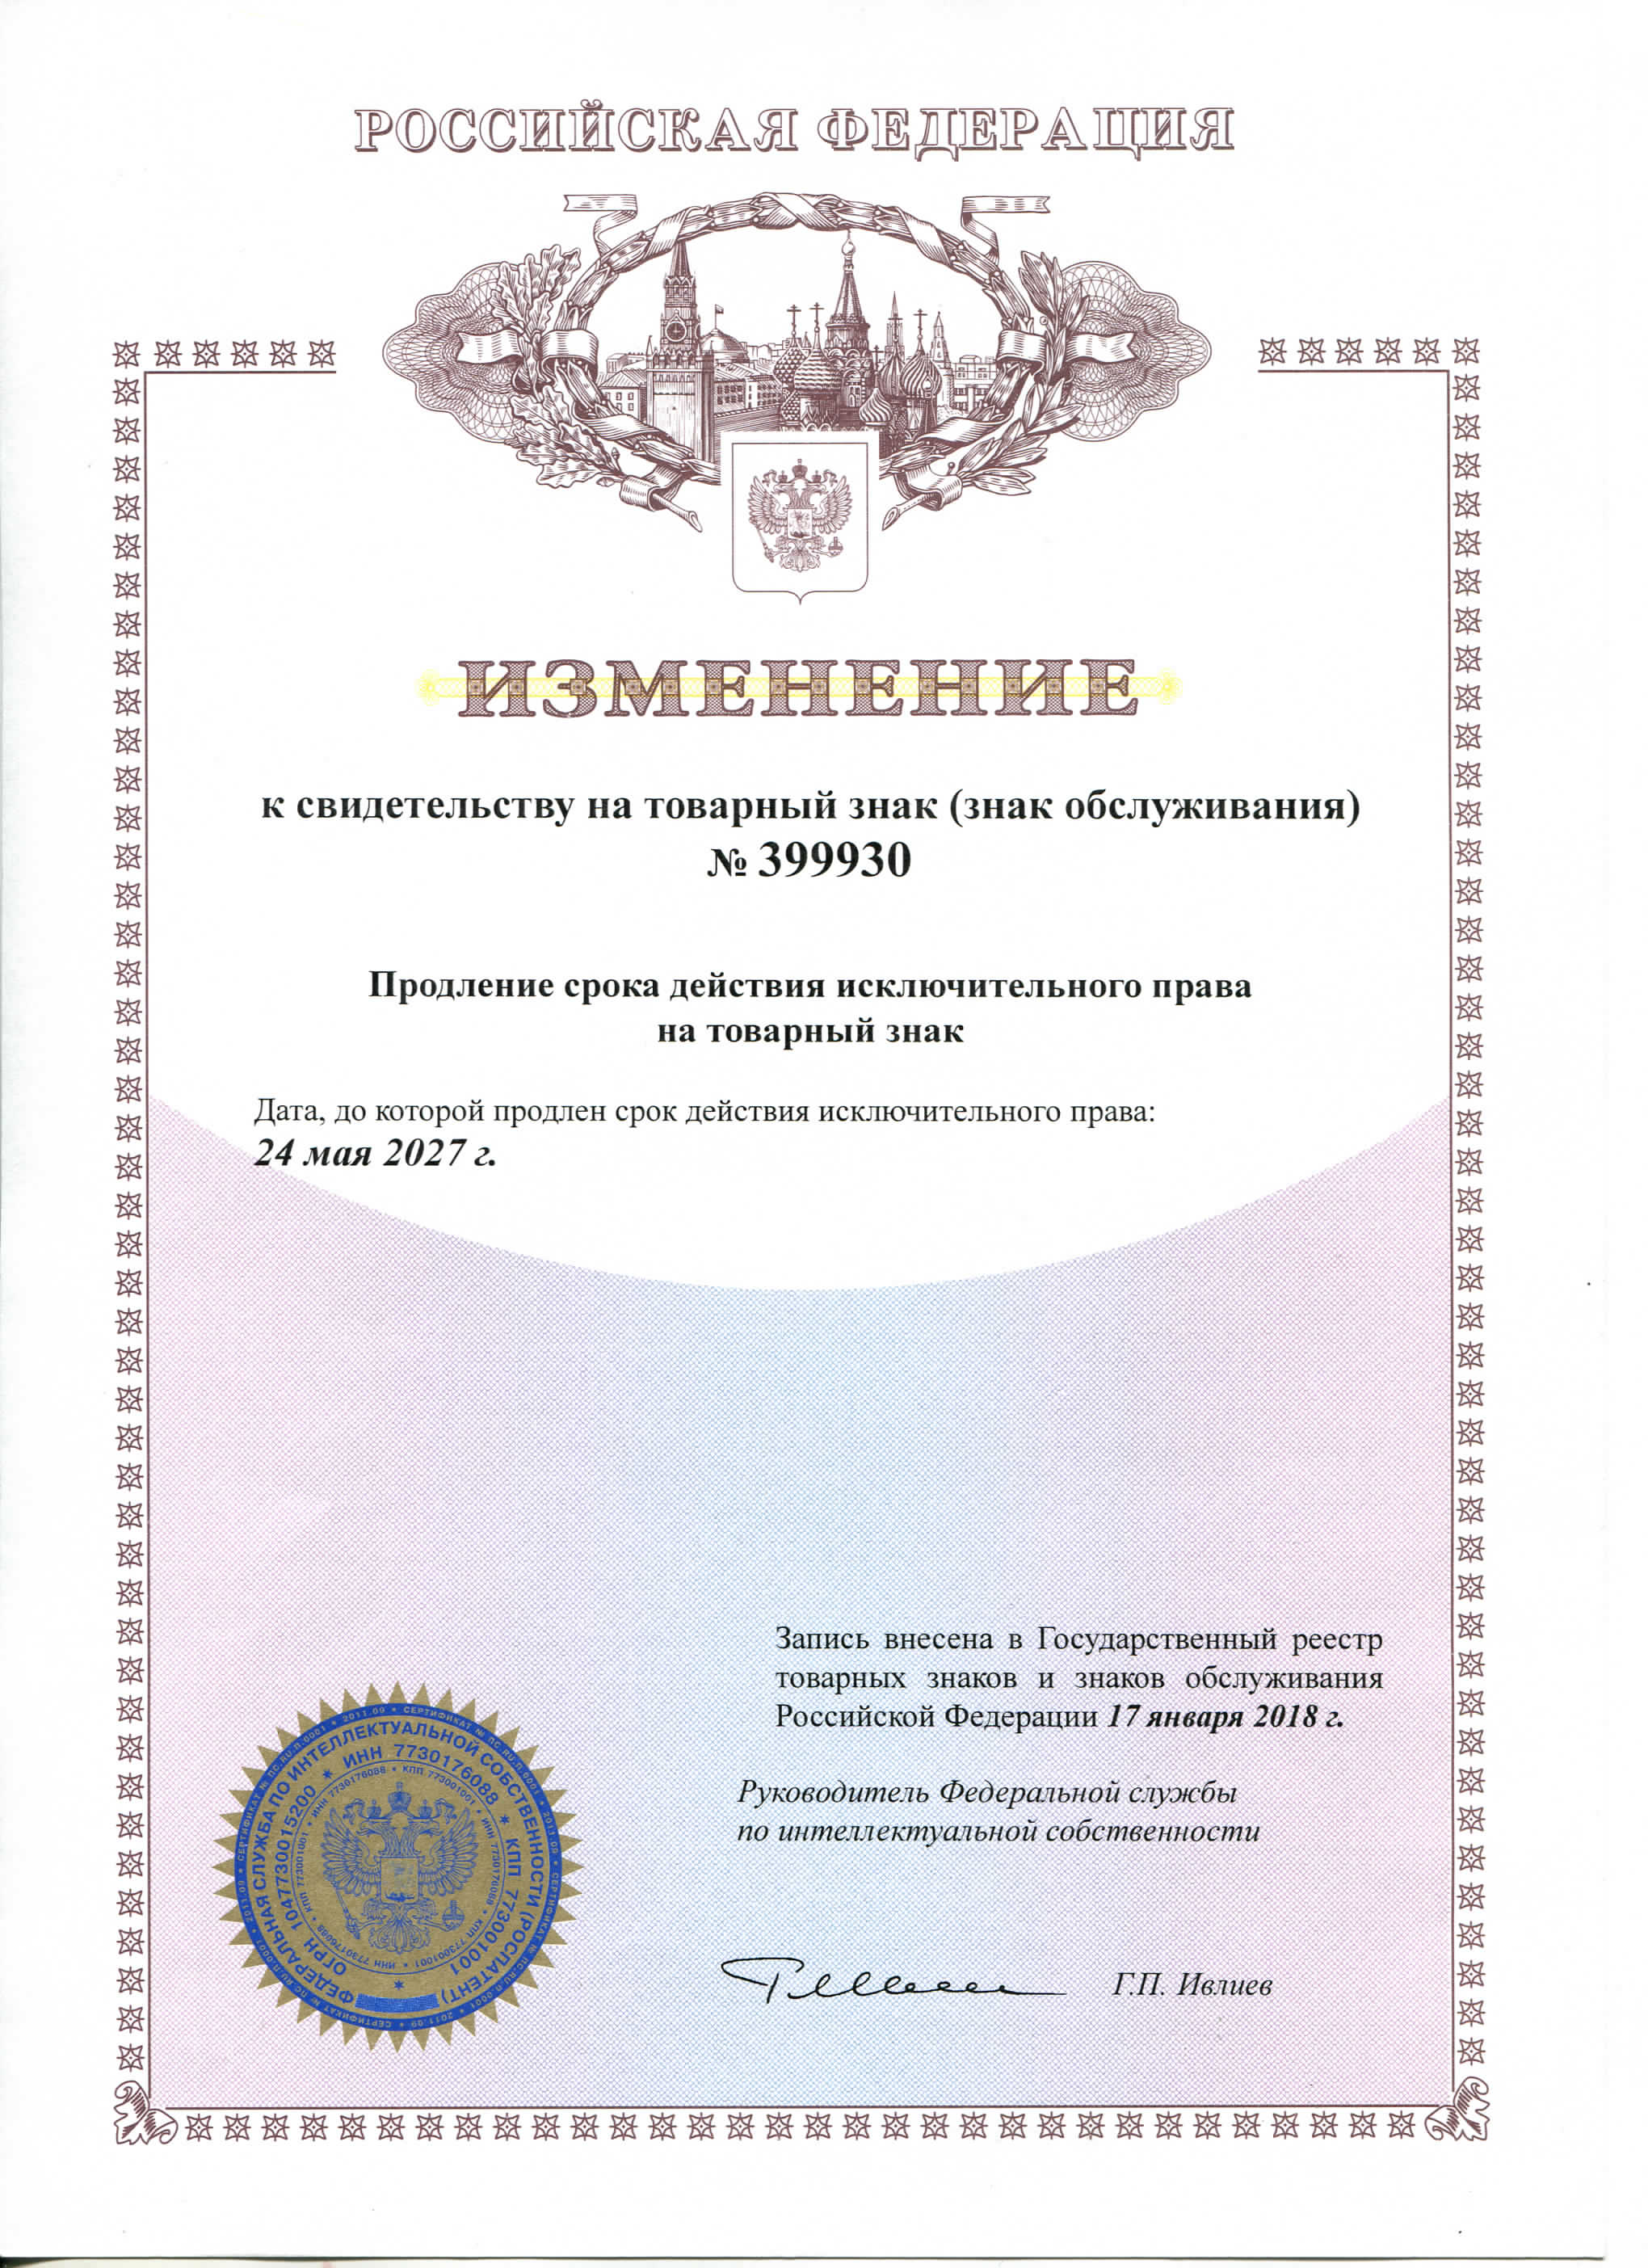 certificate-on-a-trade-mark-2.png